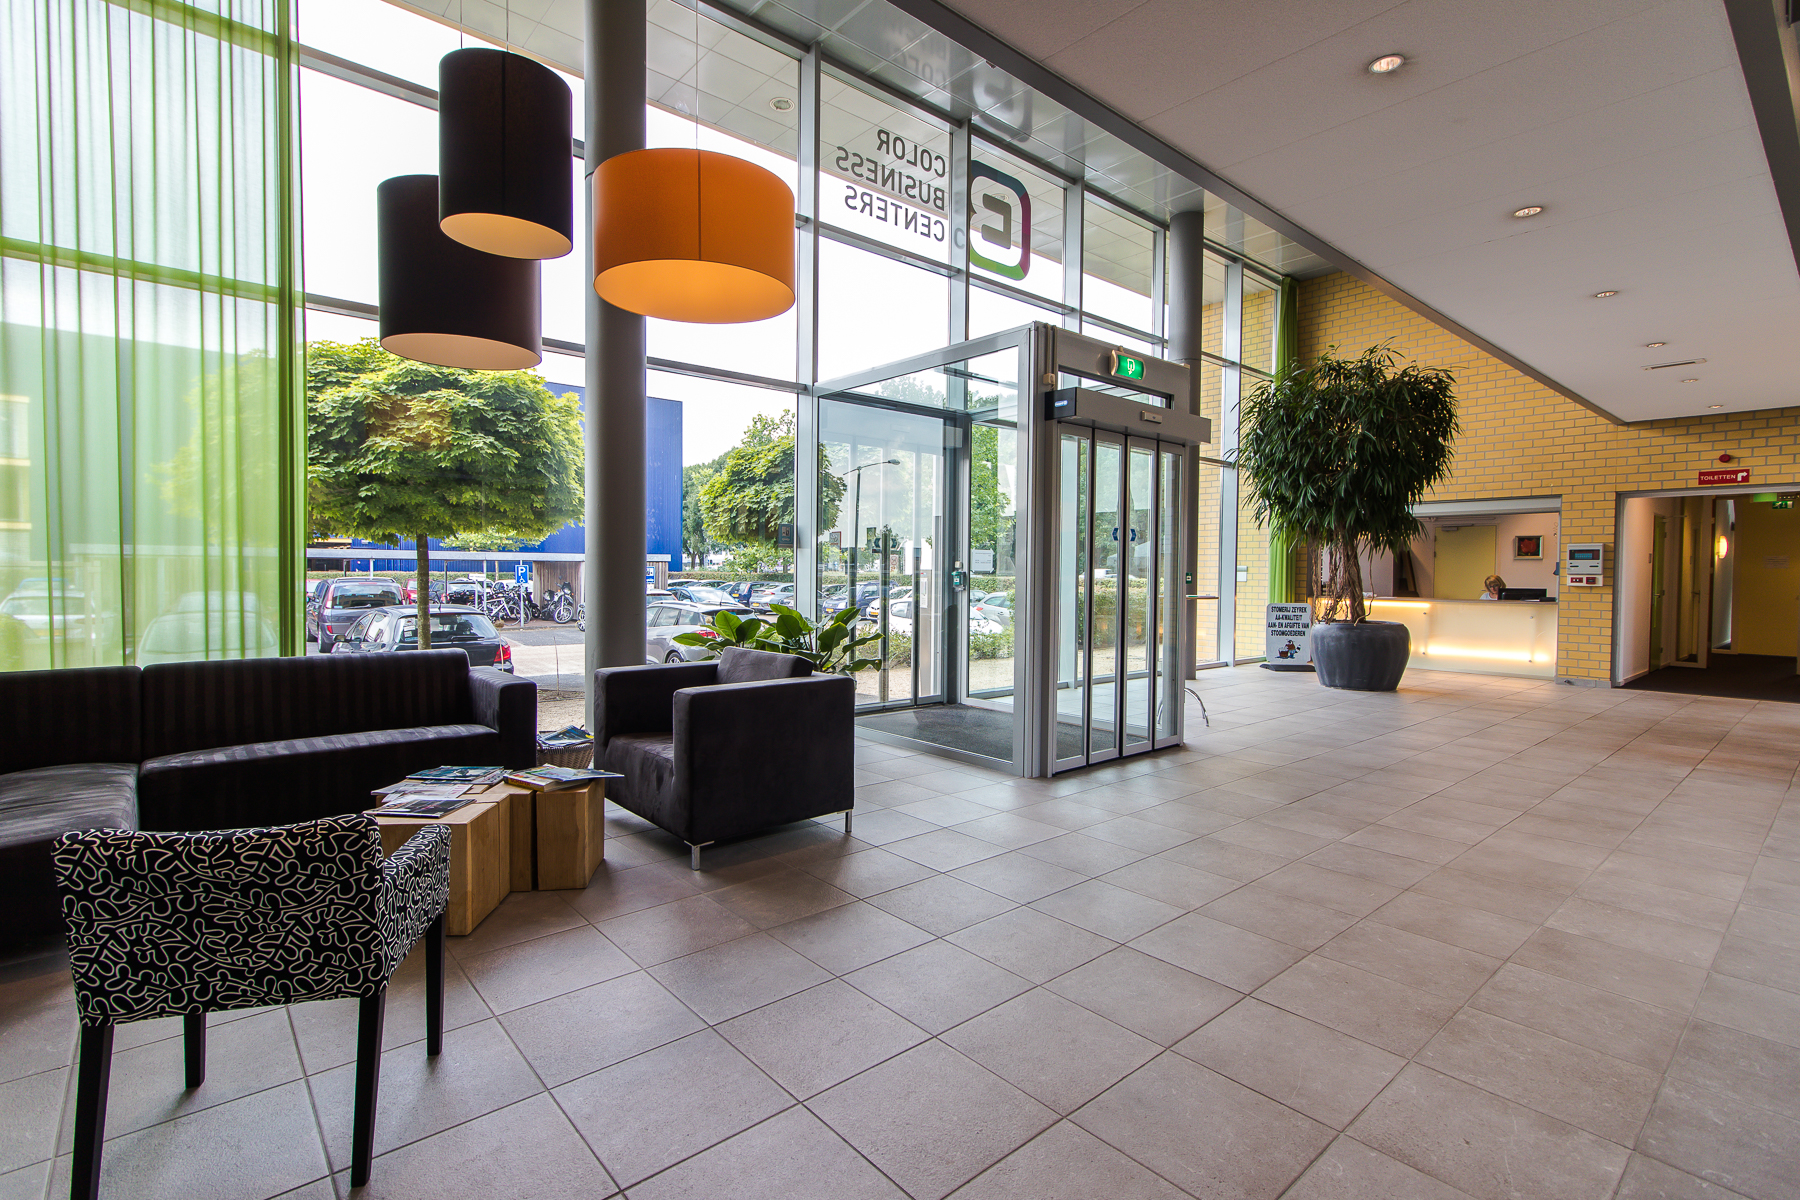 Modern entrance with manned reception during office hours